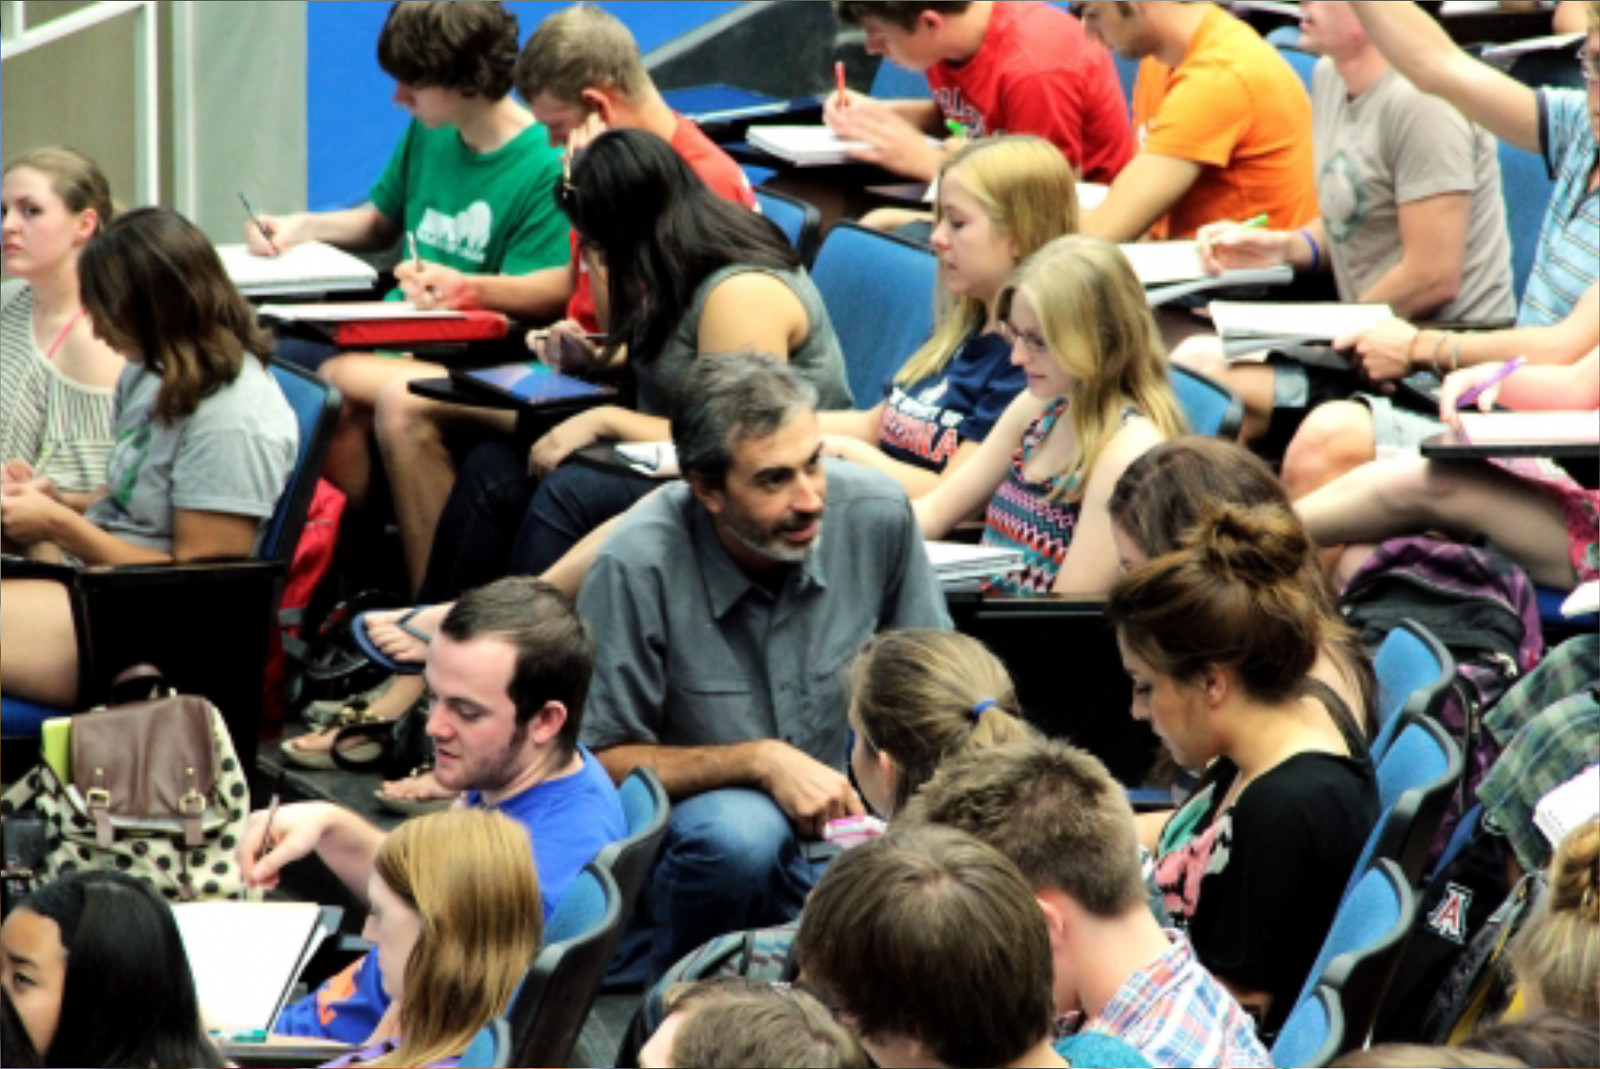 Image of students in  a lecture hall on the campus of the University of Arizona.